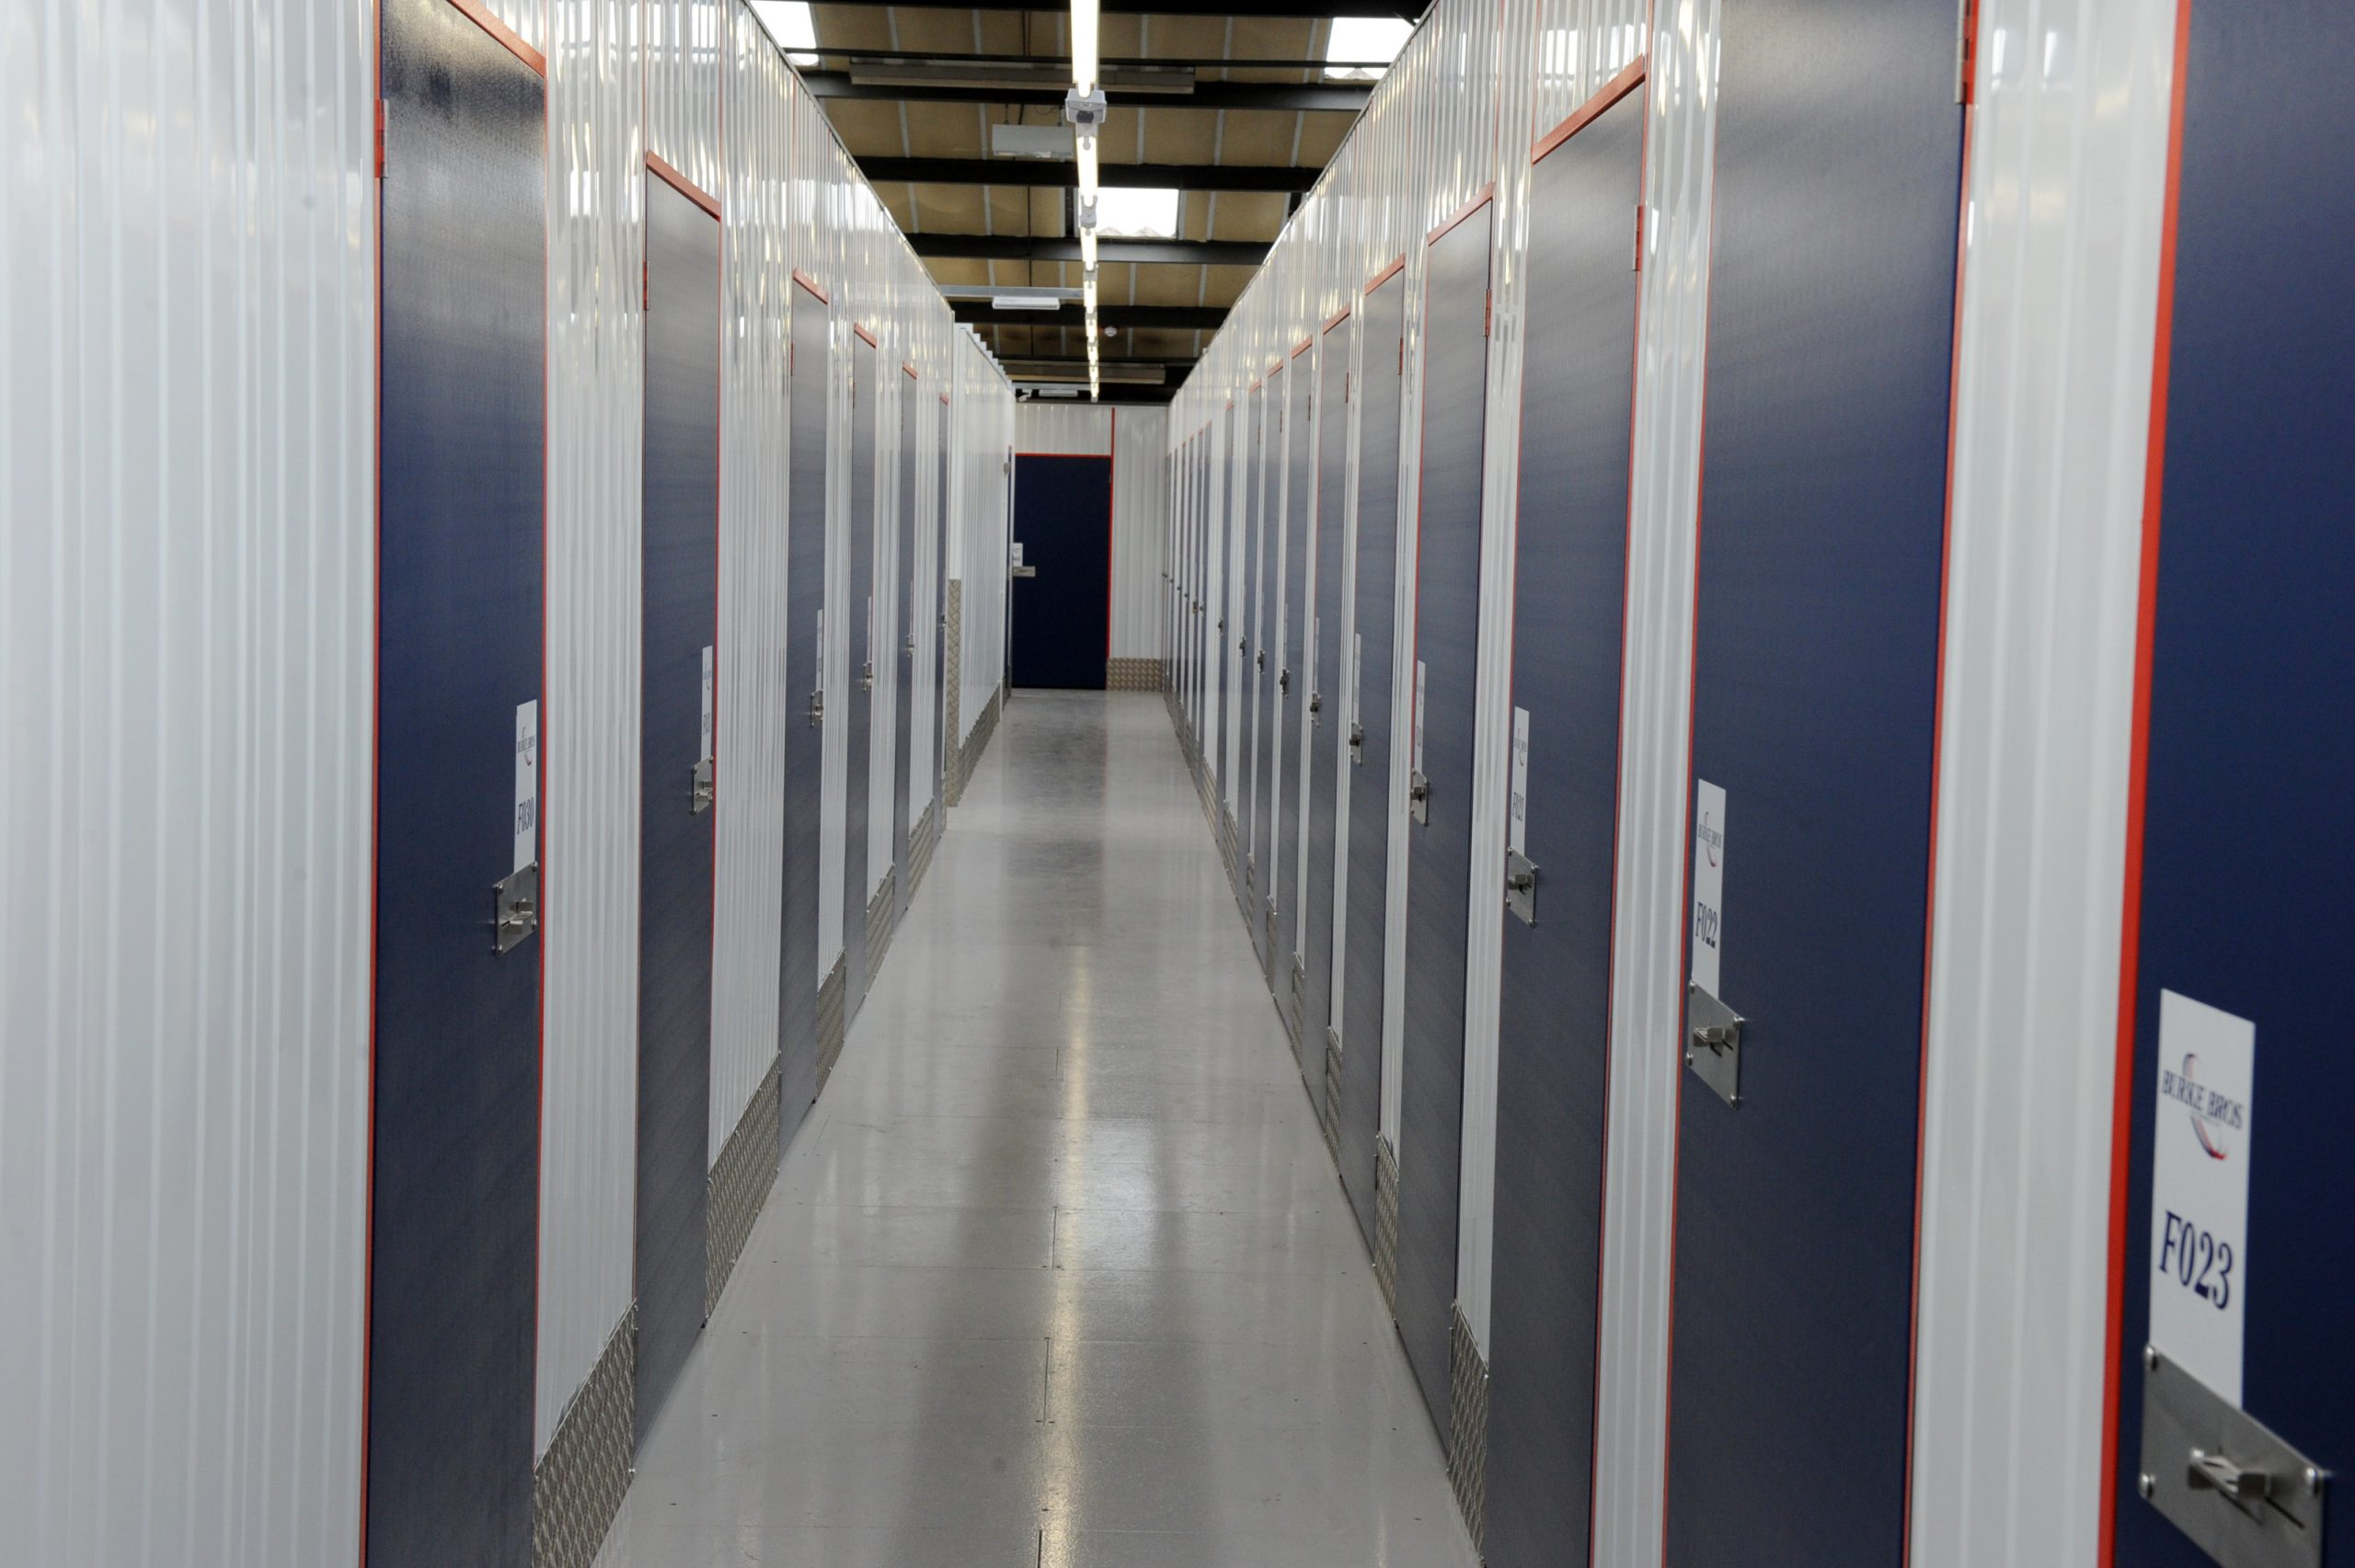 Corridor of doors in a self storage facility